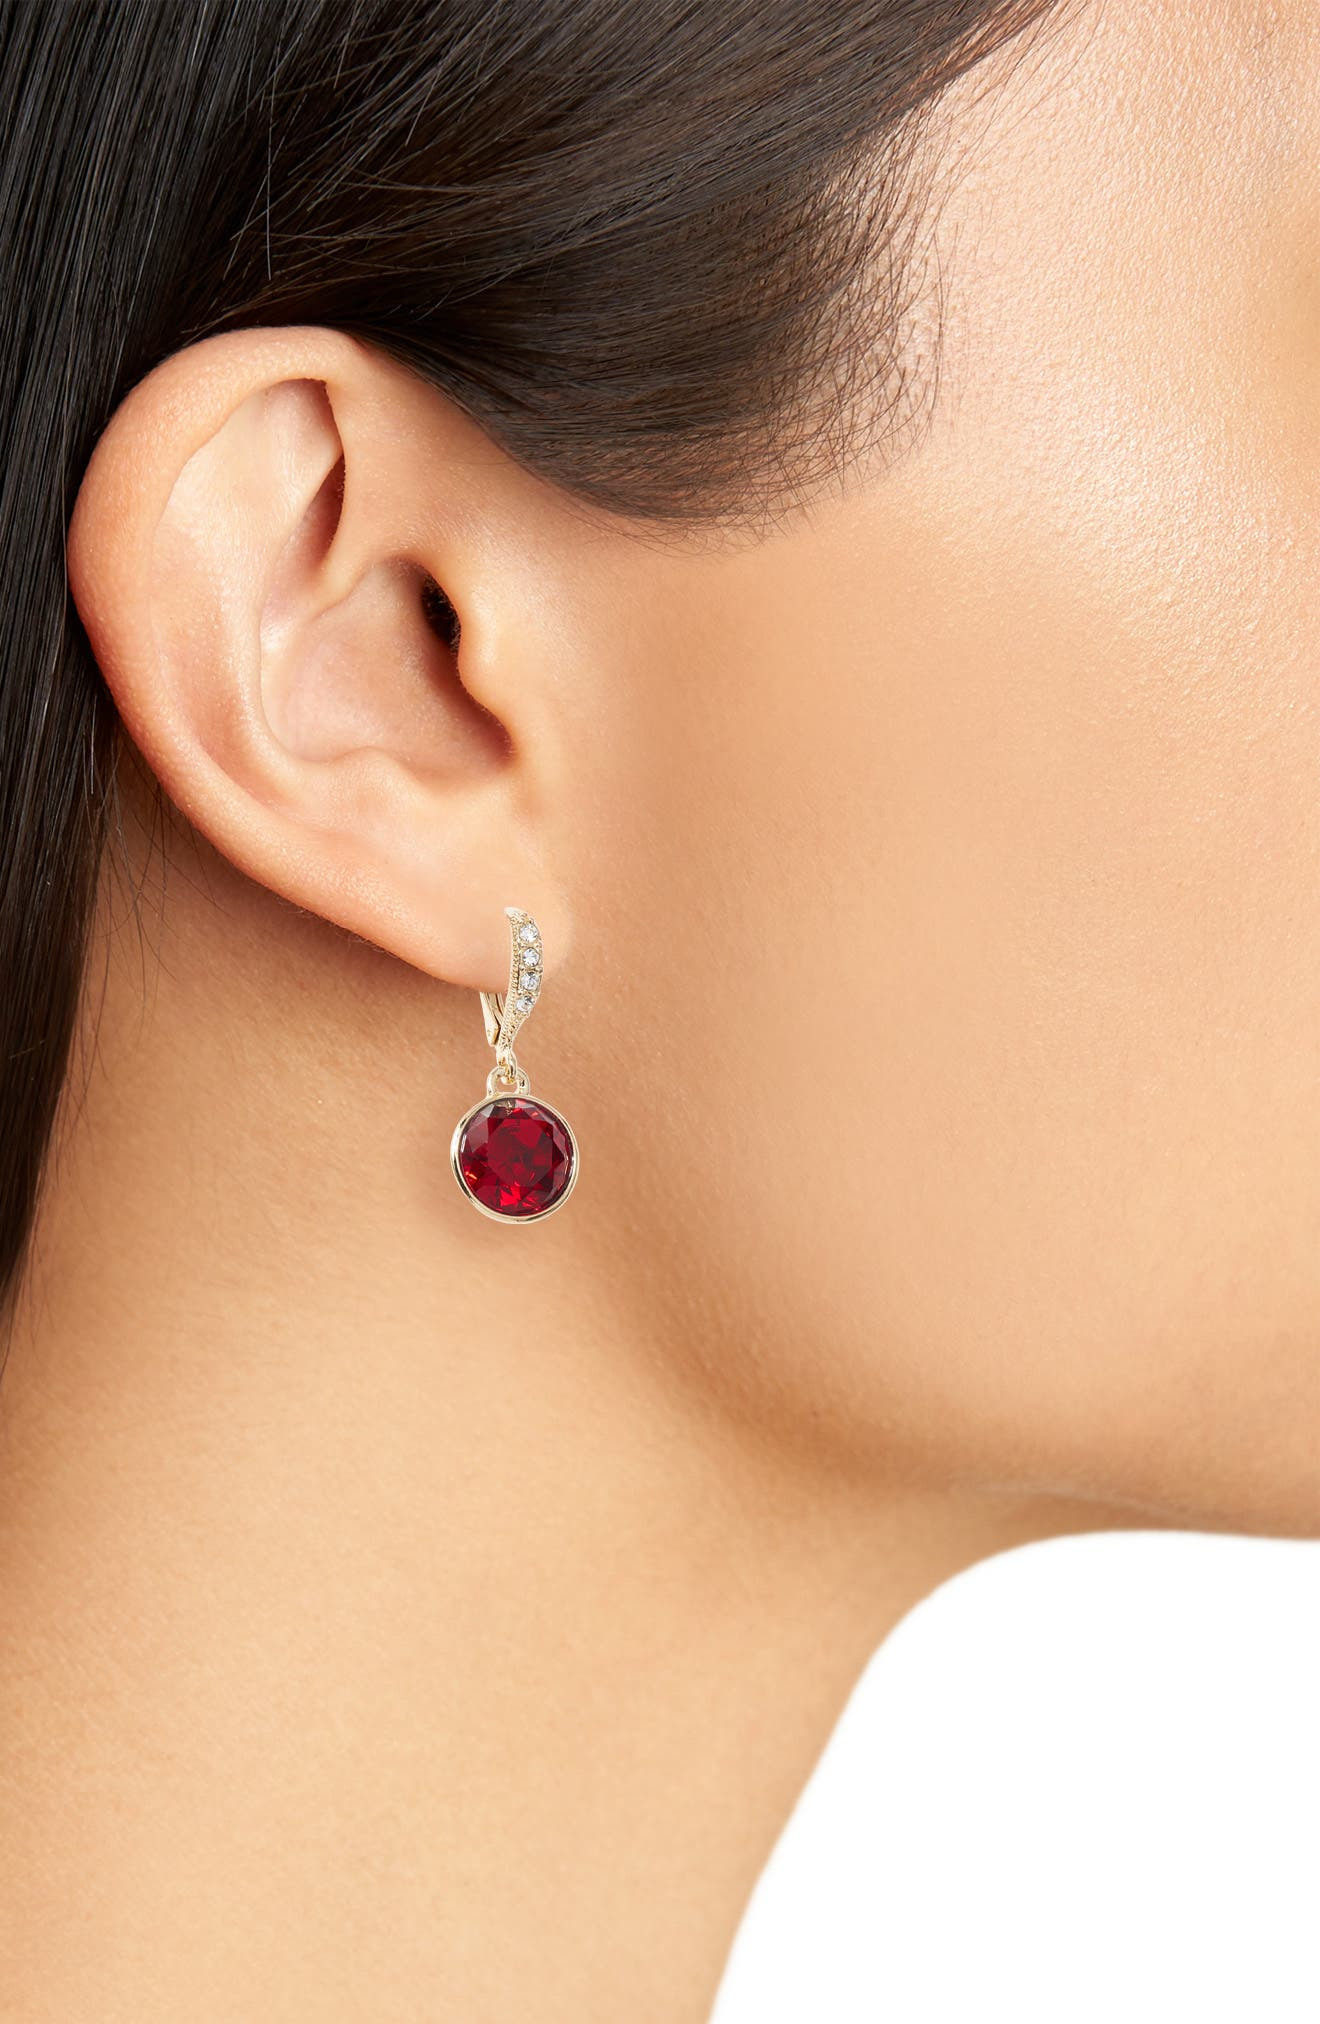 Round Drop Earrings,                             Alternate thumbnail 2, color,                             Red/ Gold